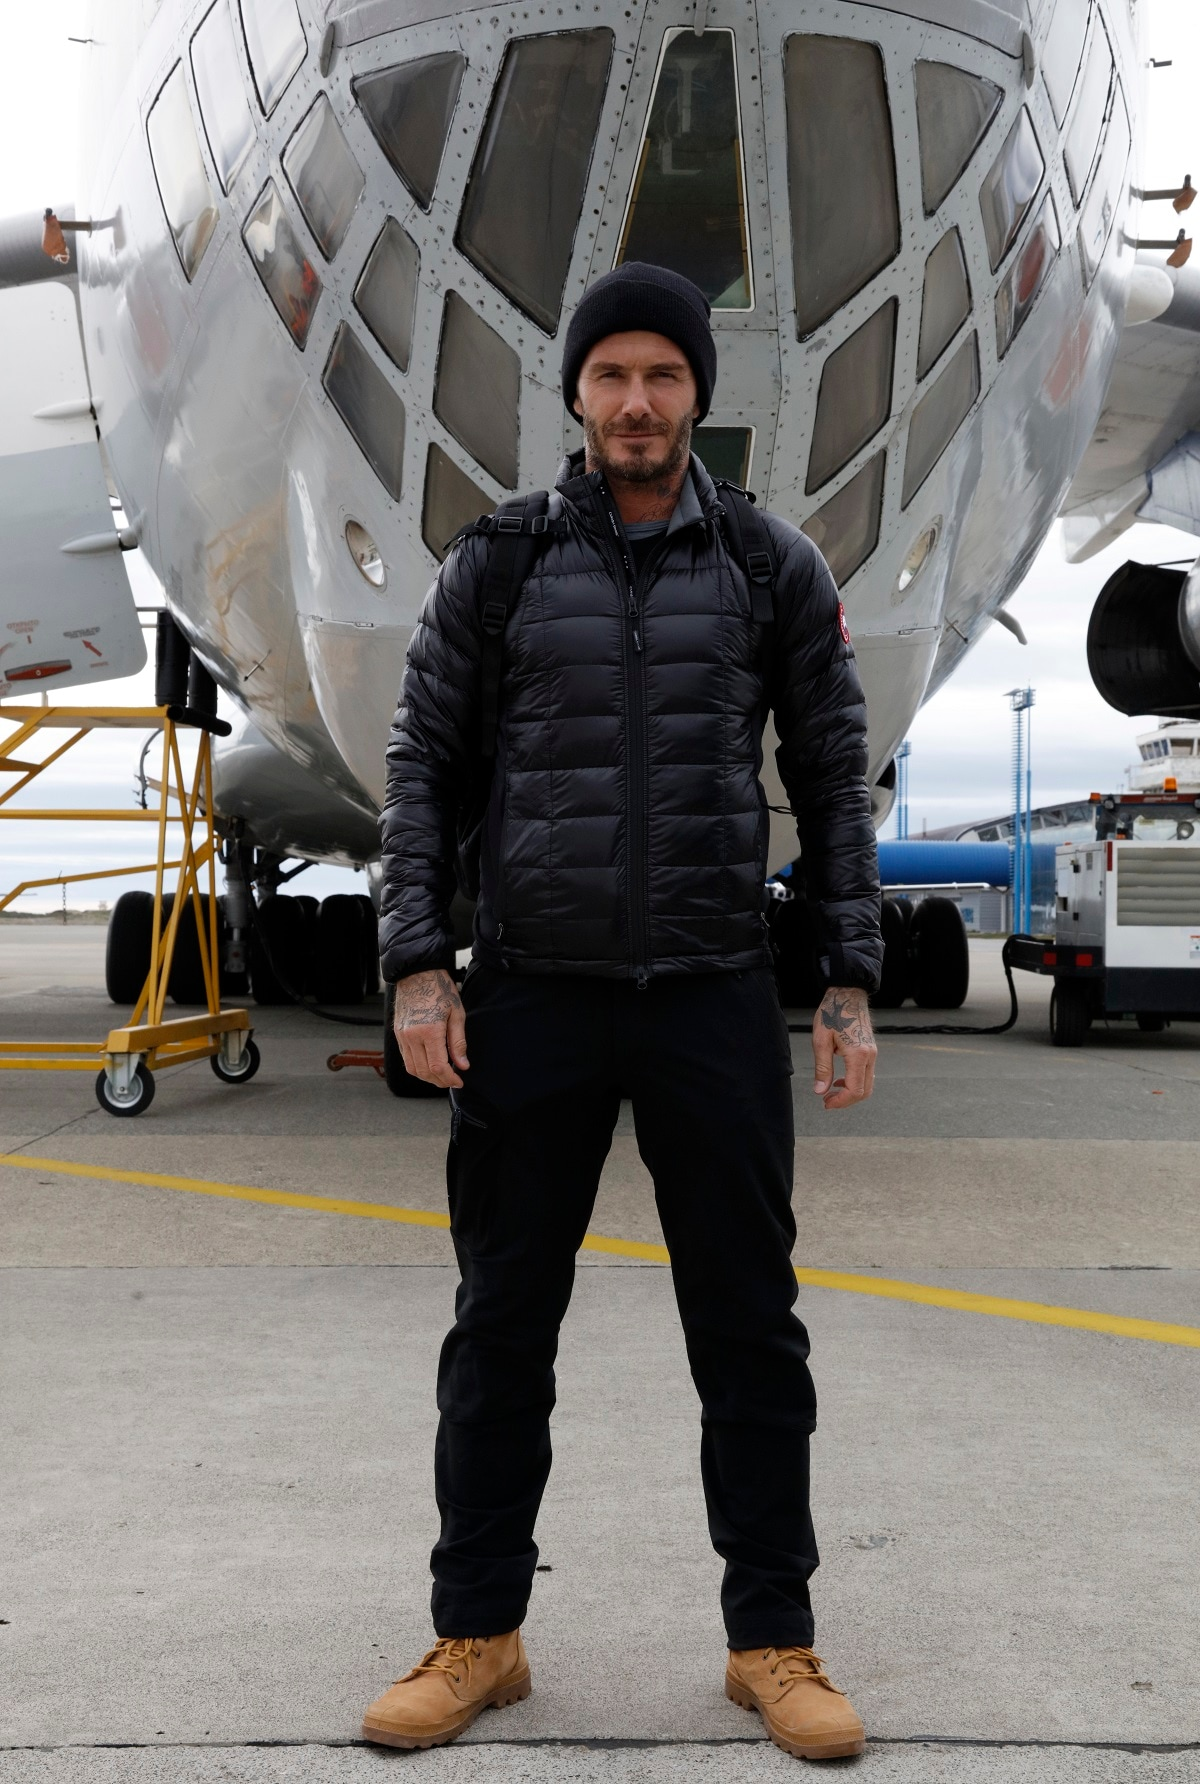 (David Beckham in Punta Arenas, Chile, ahead of a flight to Union Glacier, Antarctica. Image Courtesy: BBC)